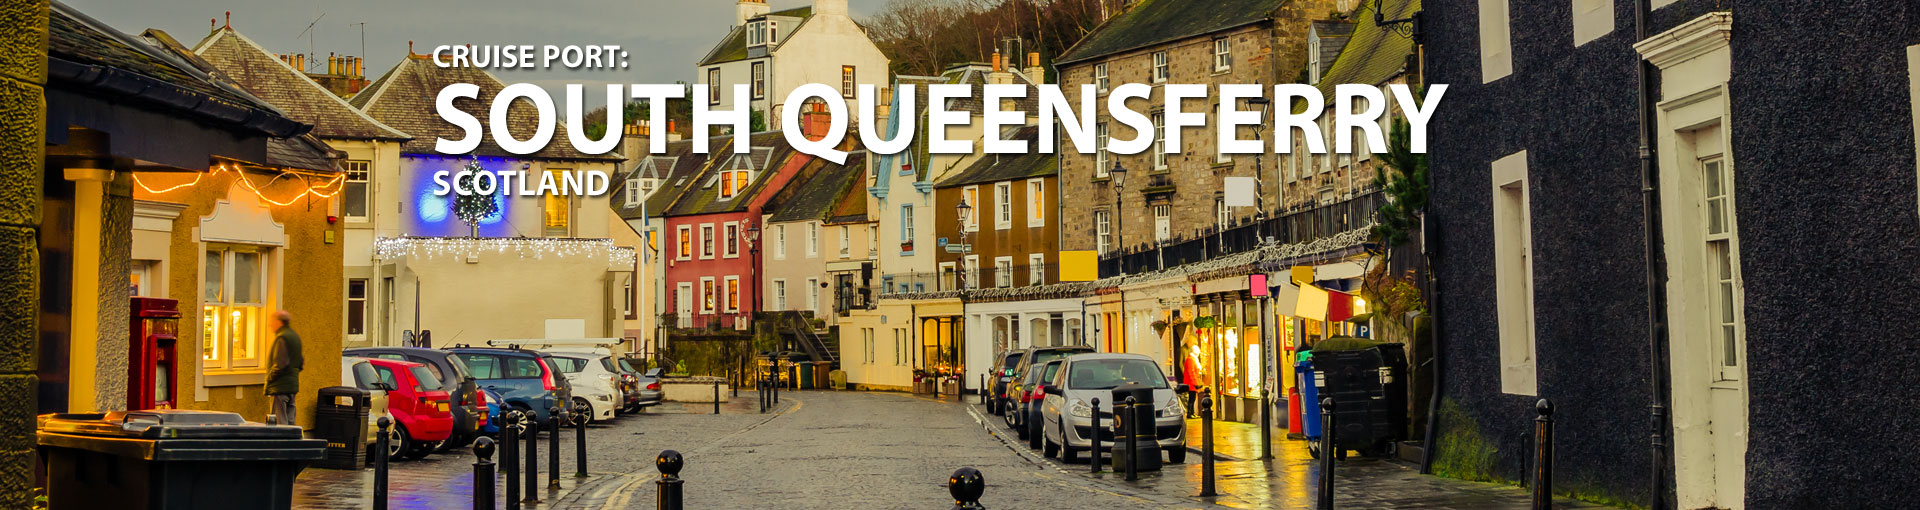 Cruises to South Queensferry, Scotland